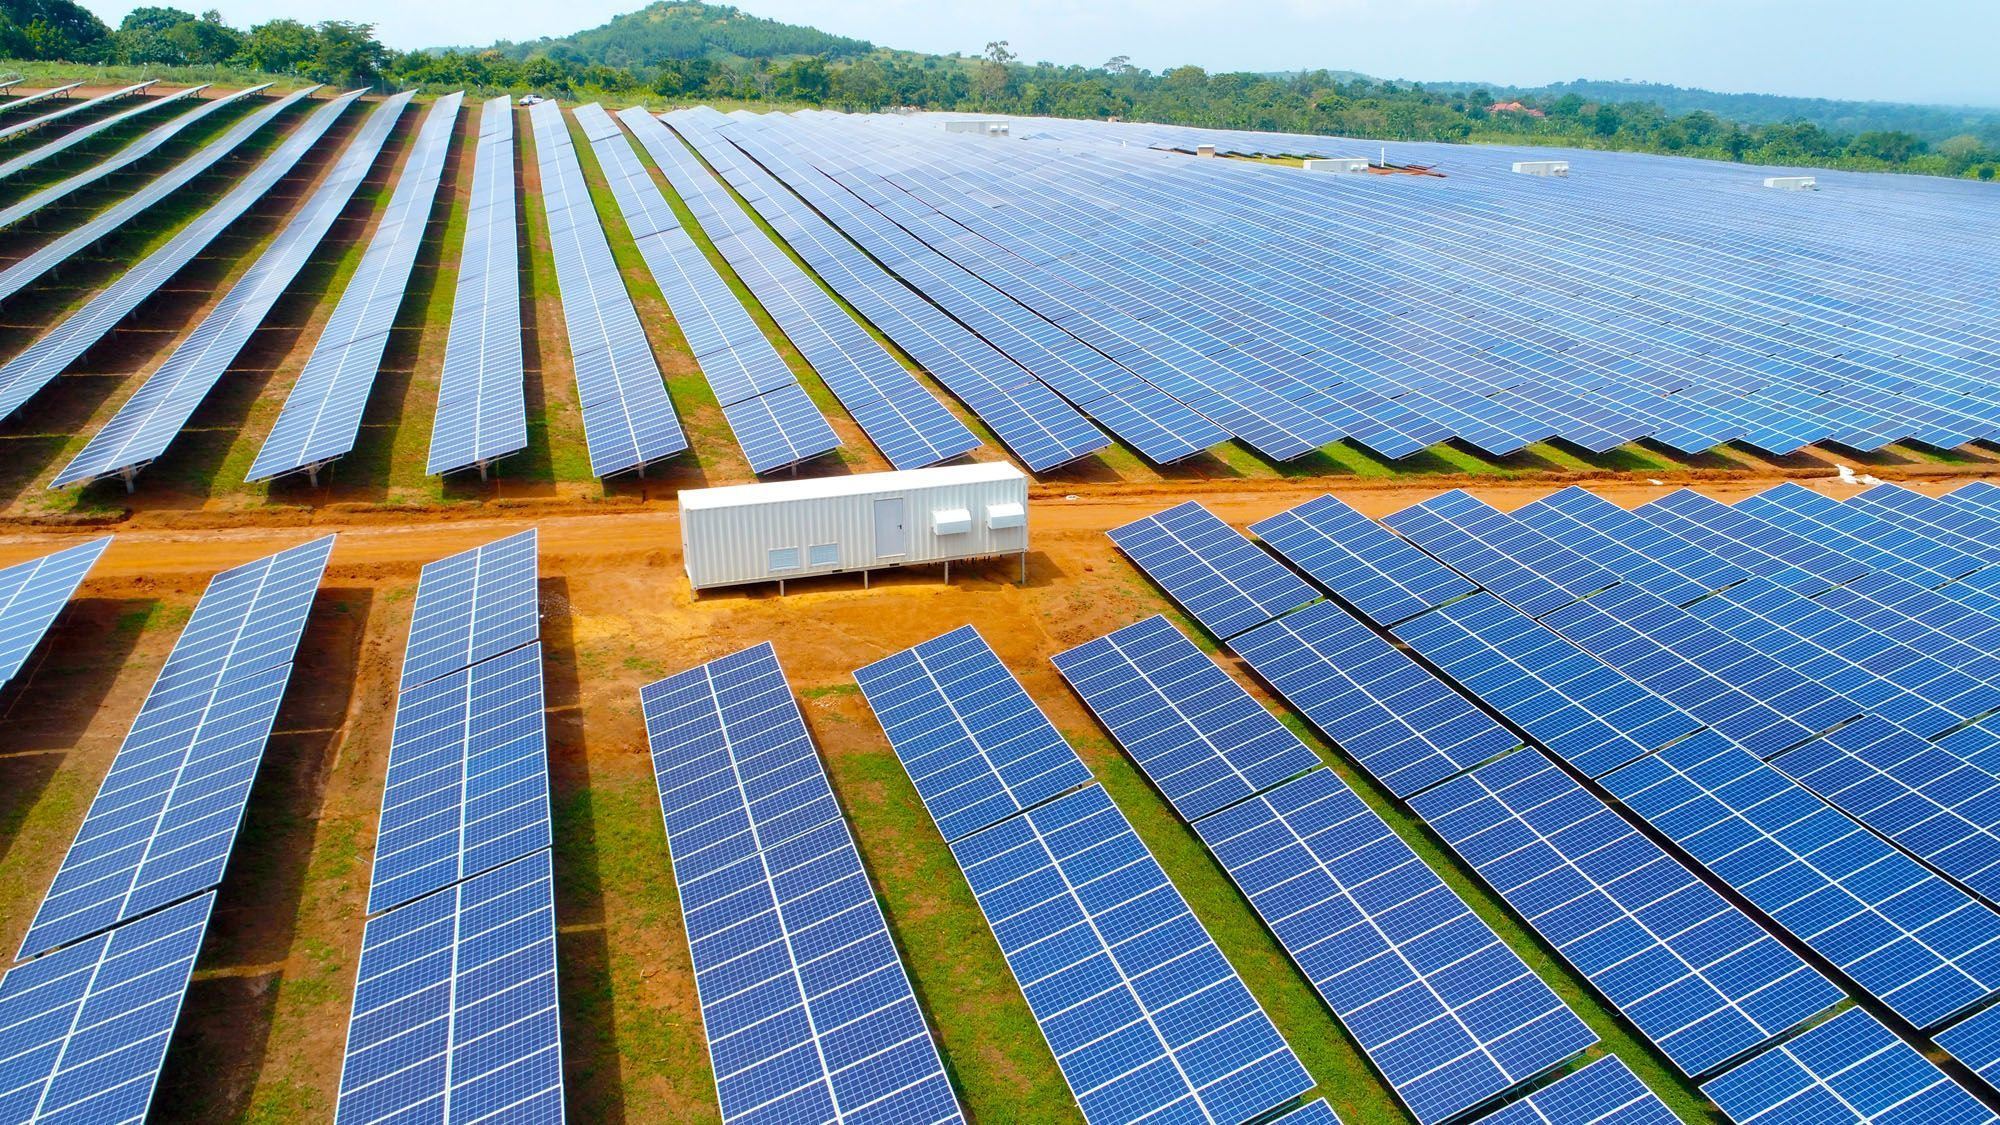 The Spanish group Ric Energy has commissioned the largest photovoltaic solar plant in East and Central Africa